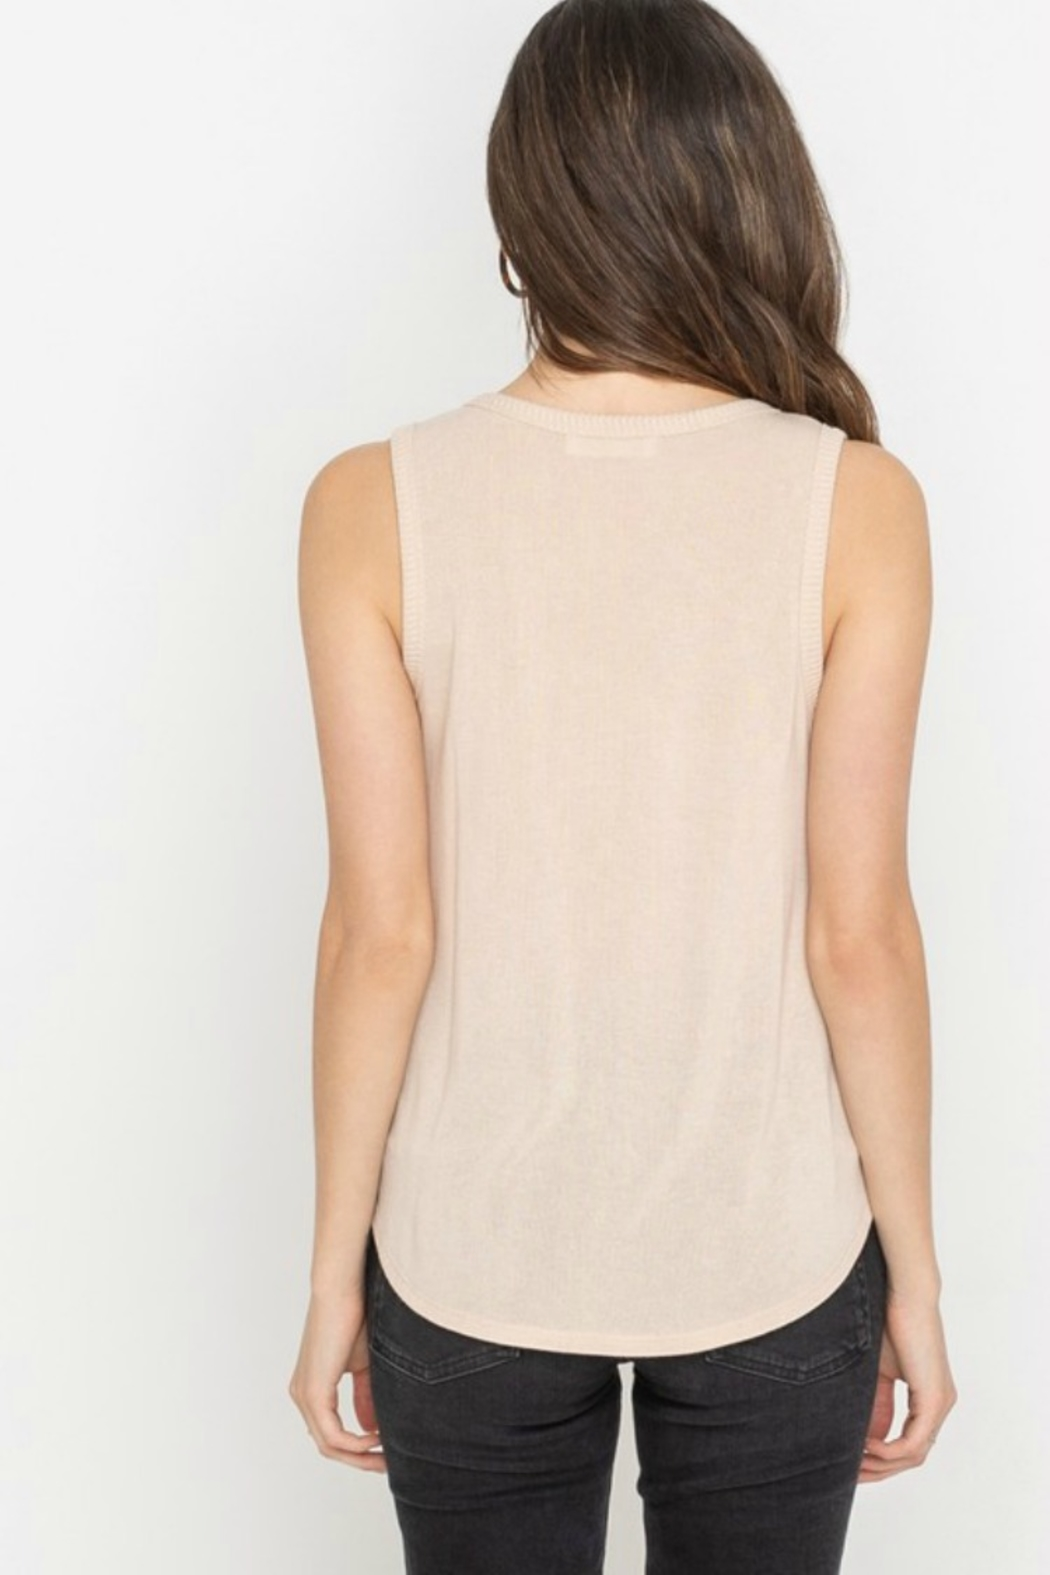 All In Favor ANDE TIE TANK - Side Cropped Image